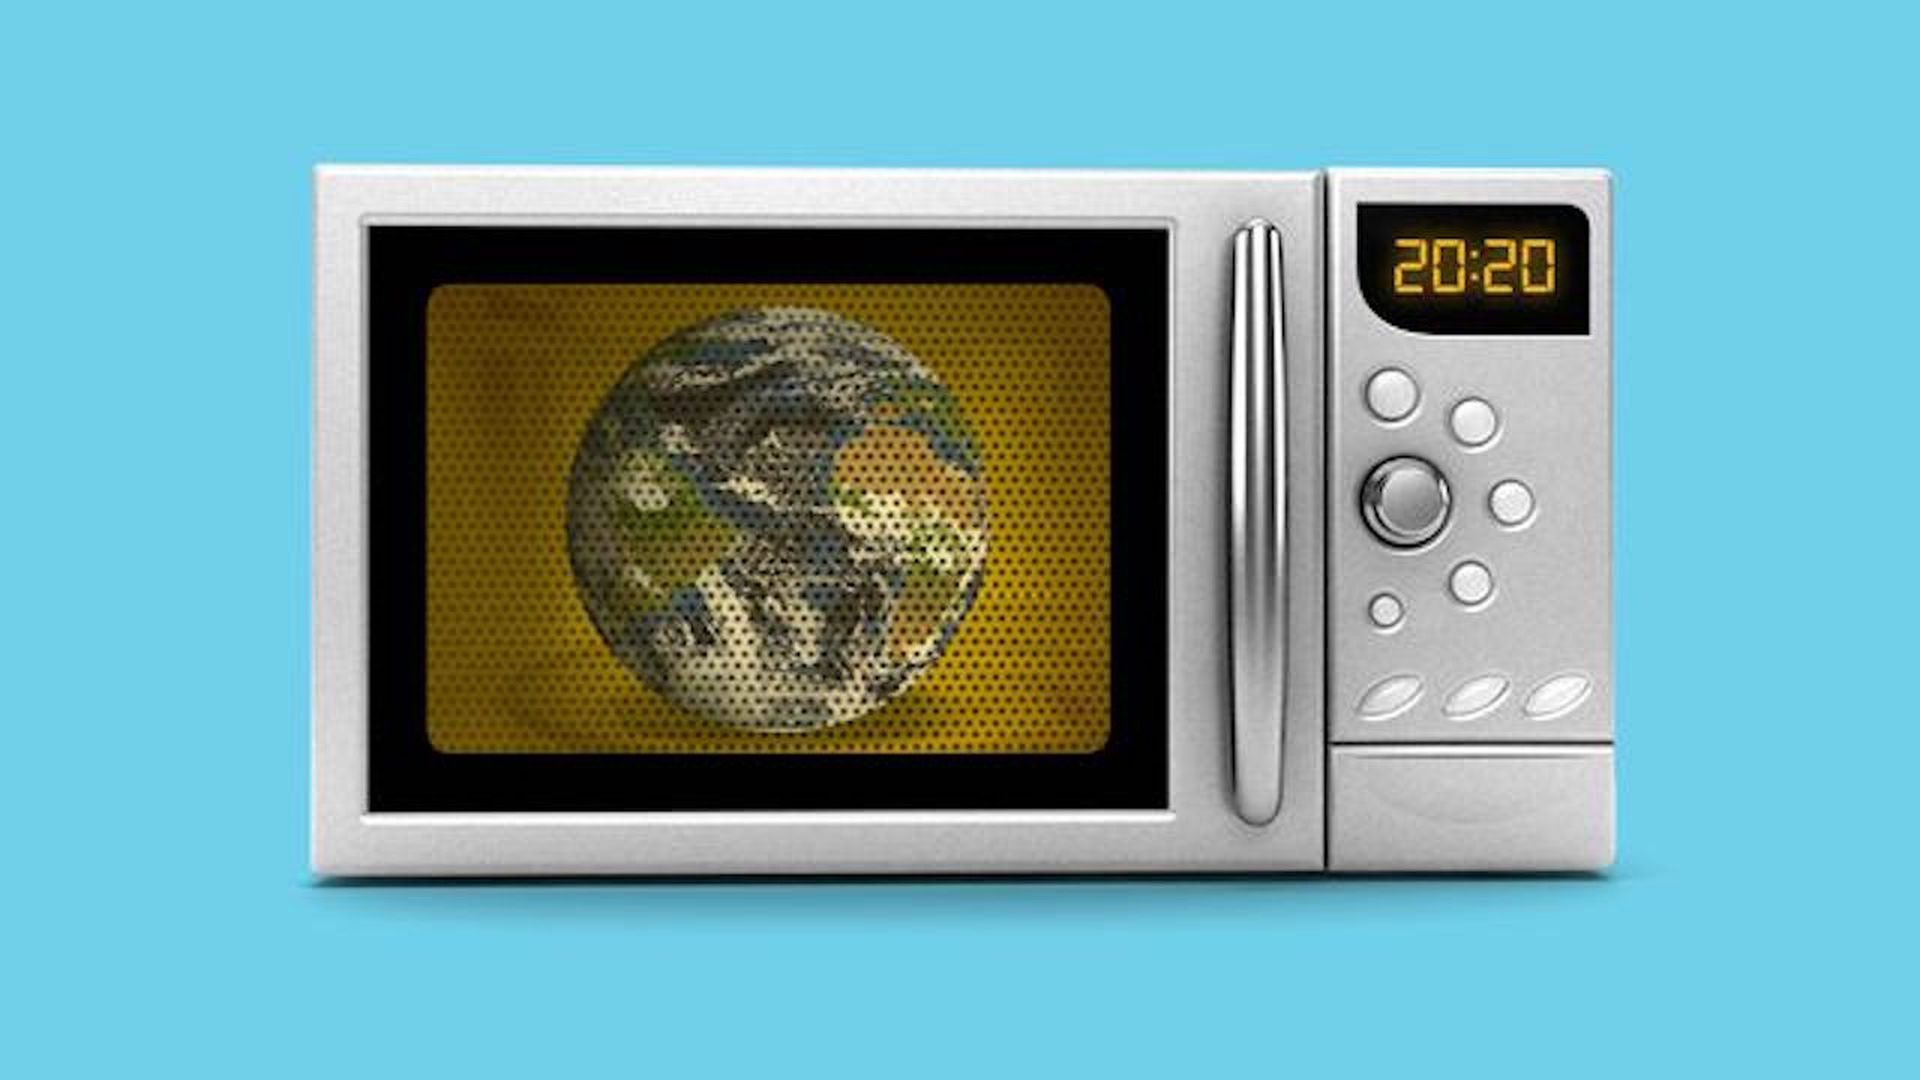 Earth inside a microwave illustration